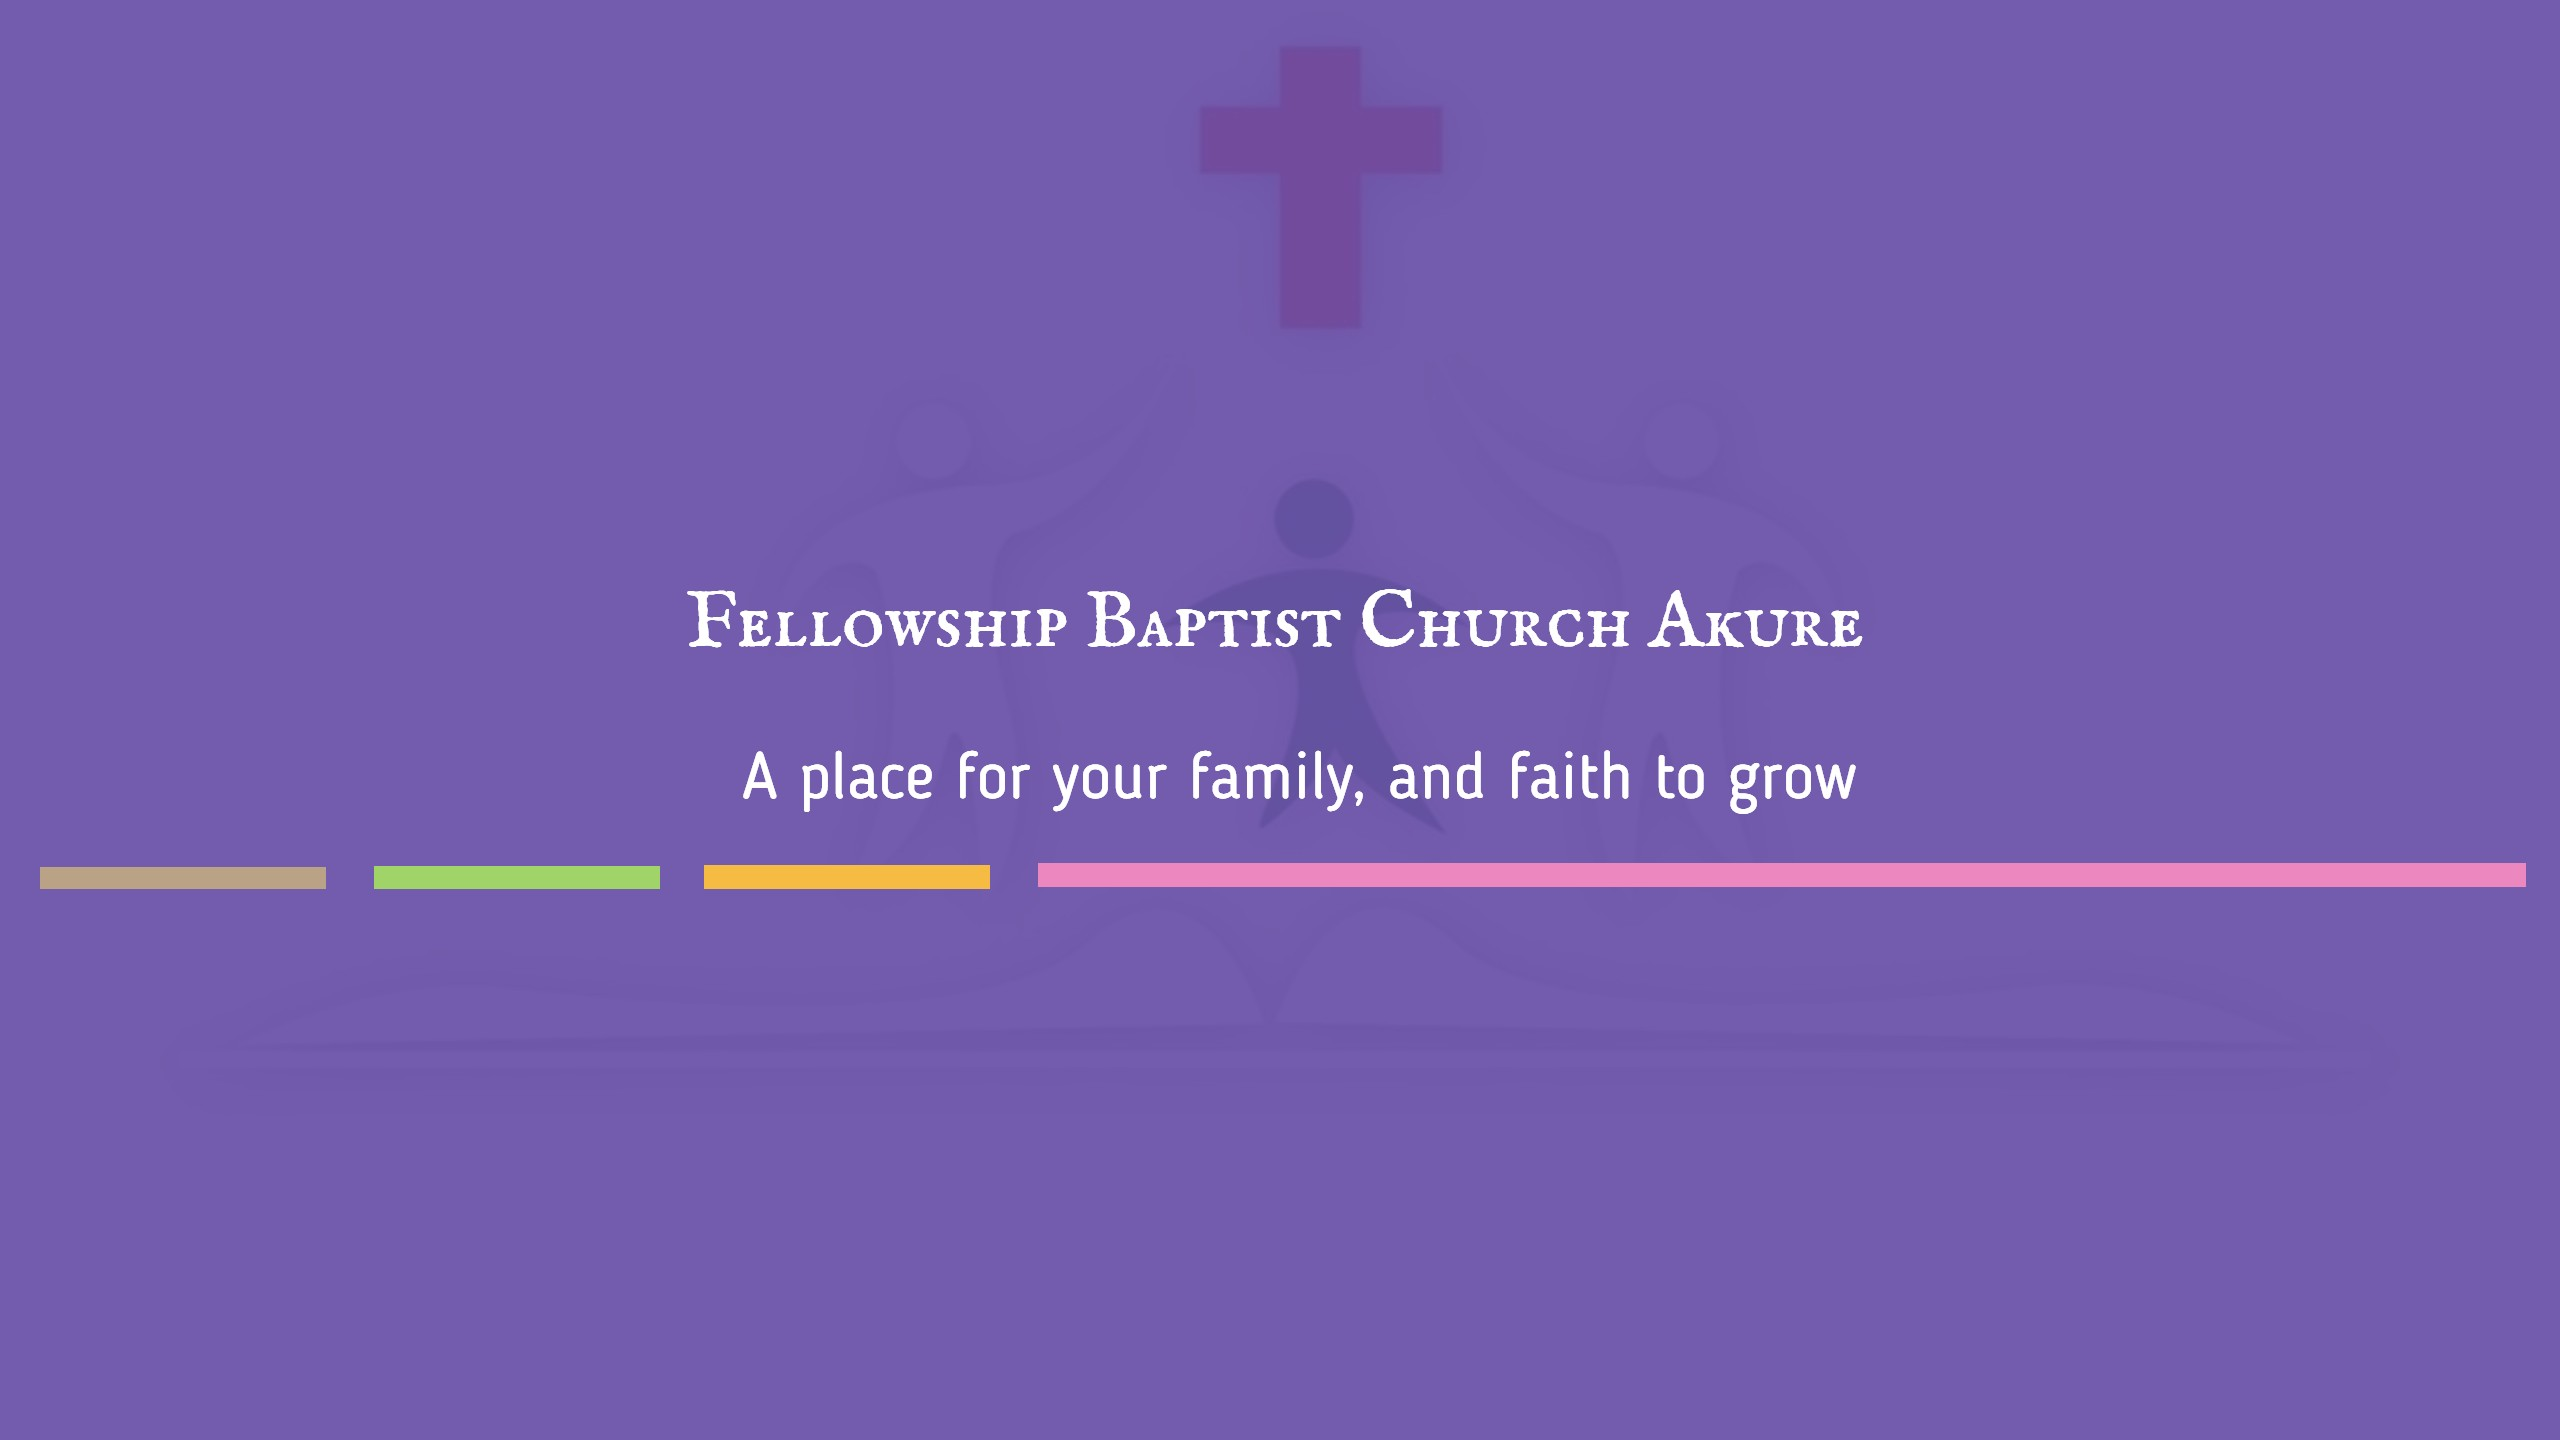 A place for your family, and faith to grow